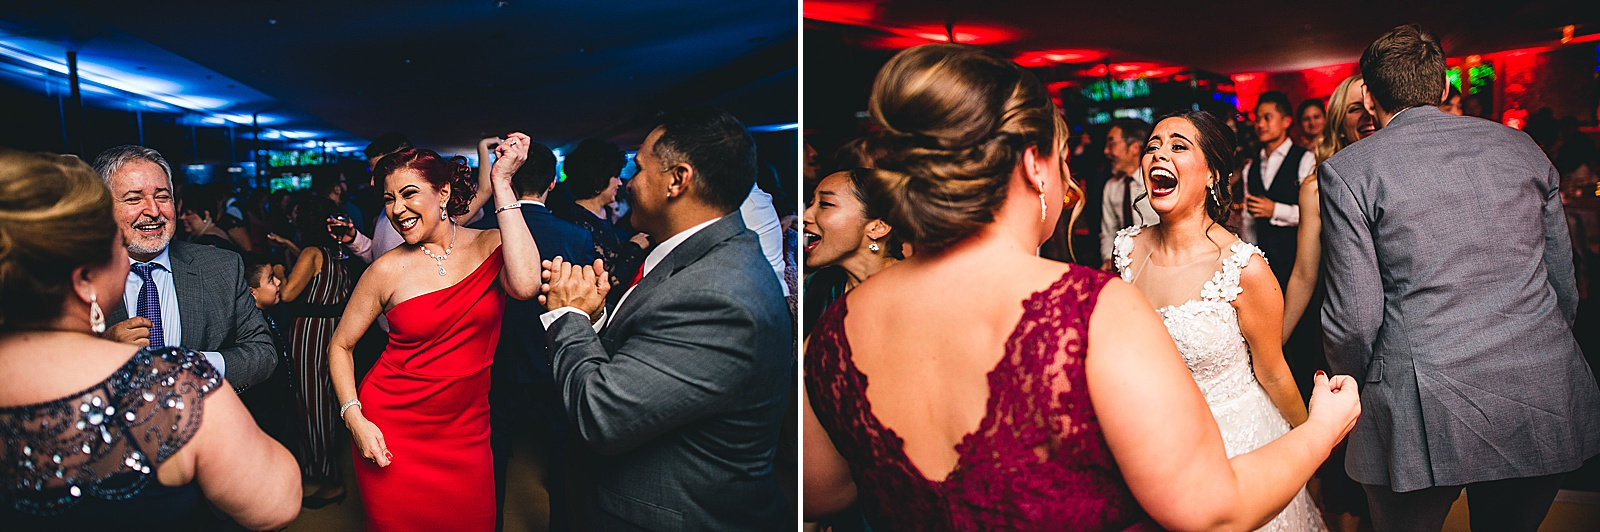 27 reception - Chicago Wedding Photography at Morton Arboretum // Alex + Tim